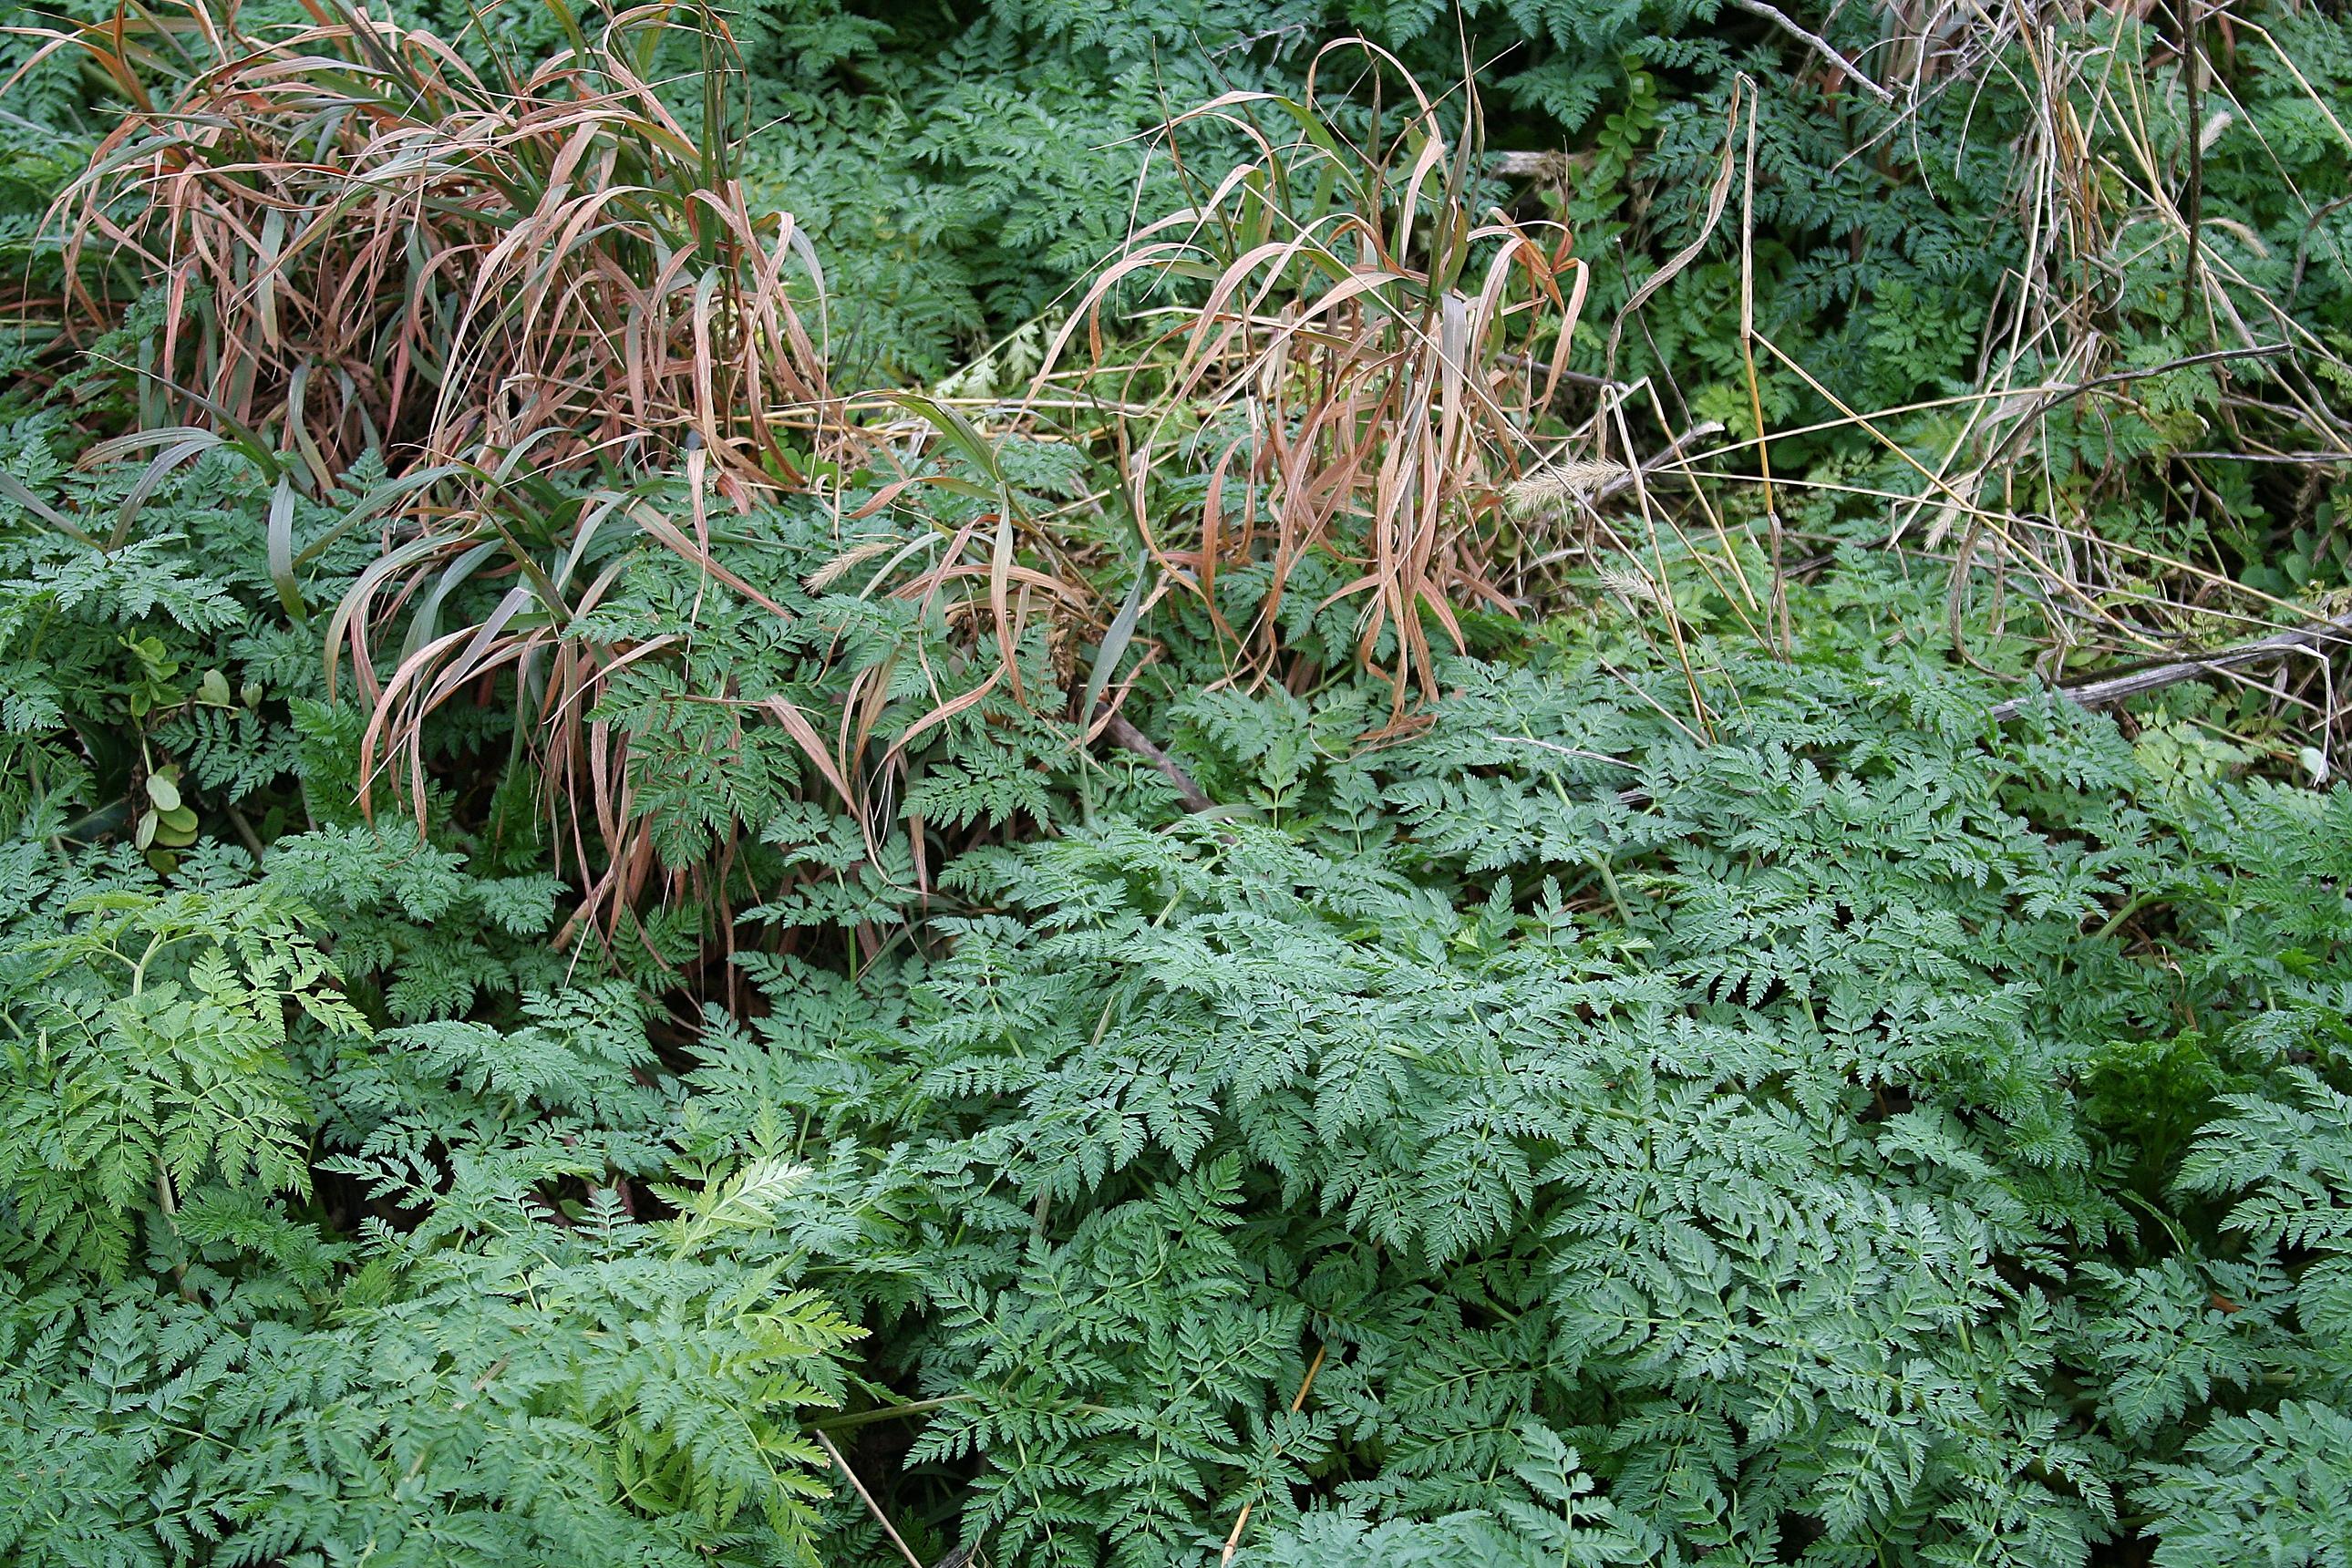 A Purdue Extension weed scientist is urging crop and livestock producers to control poison hemlock in the fall. (Purdue Botany and Plant Pathology photo/Travis Legleiter)